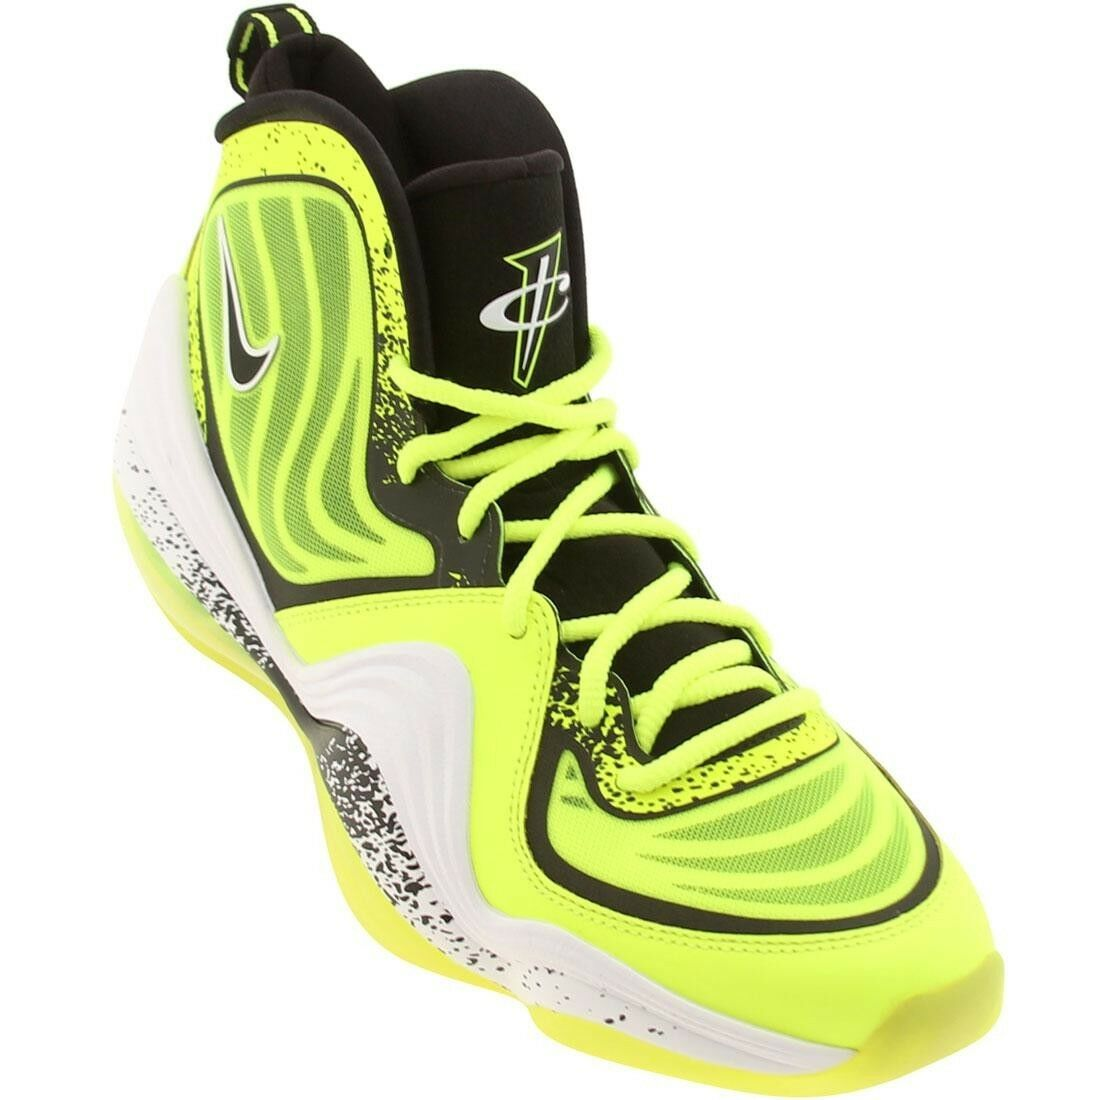 628568-701 Nike Men Air Penny V HL (volt / black / white)